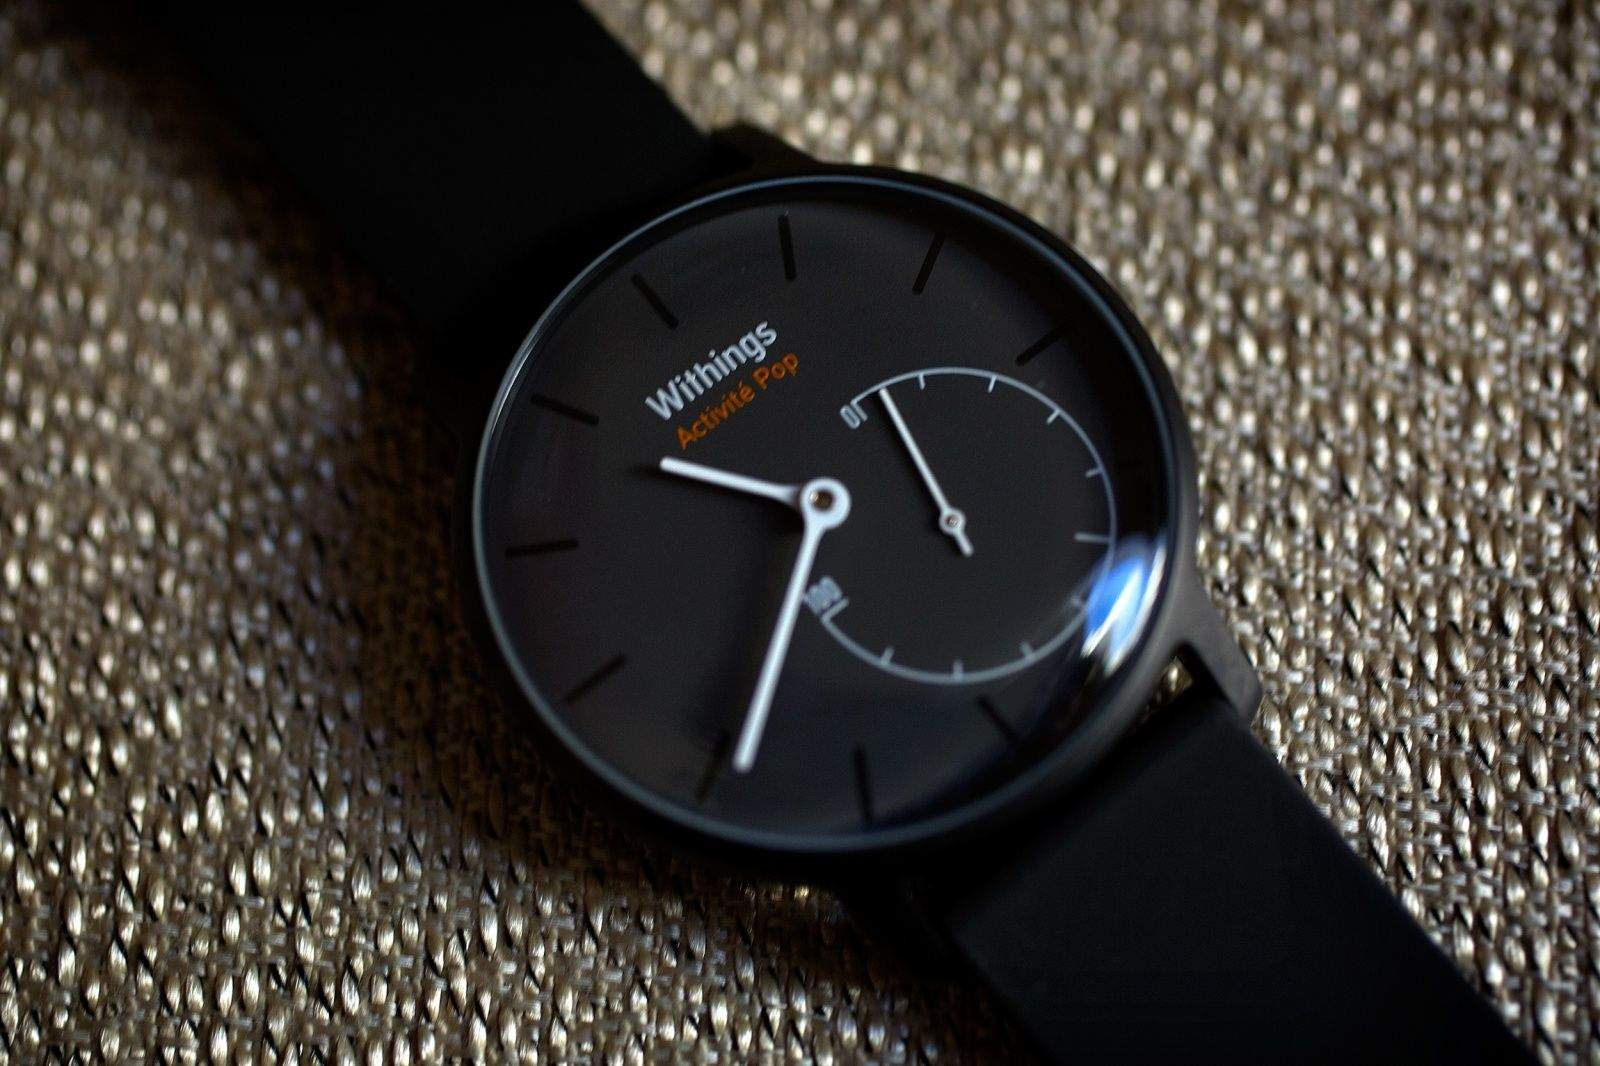 Withings smart watch is one of the best looking wearables around. Photo: Jim Merithew/Cult of Mac